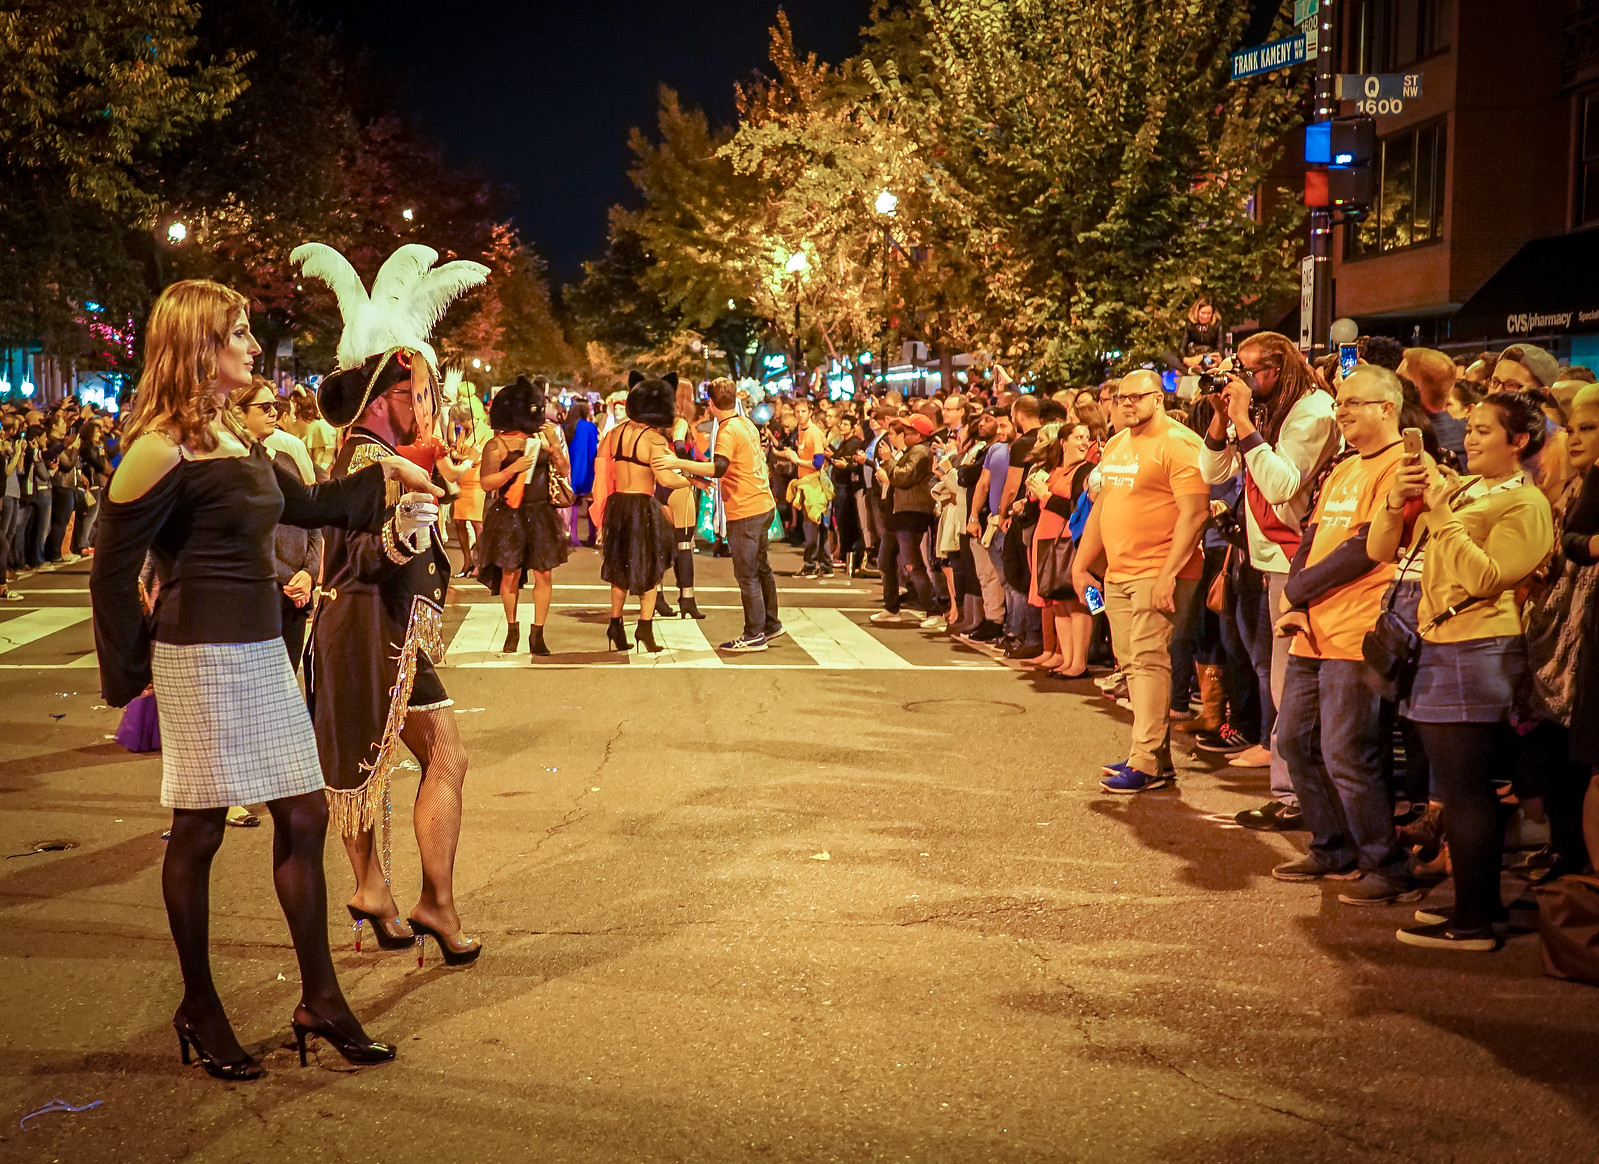 2017.10.24 Dupont Circle High Heel Race, Washington, DC USA 9955